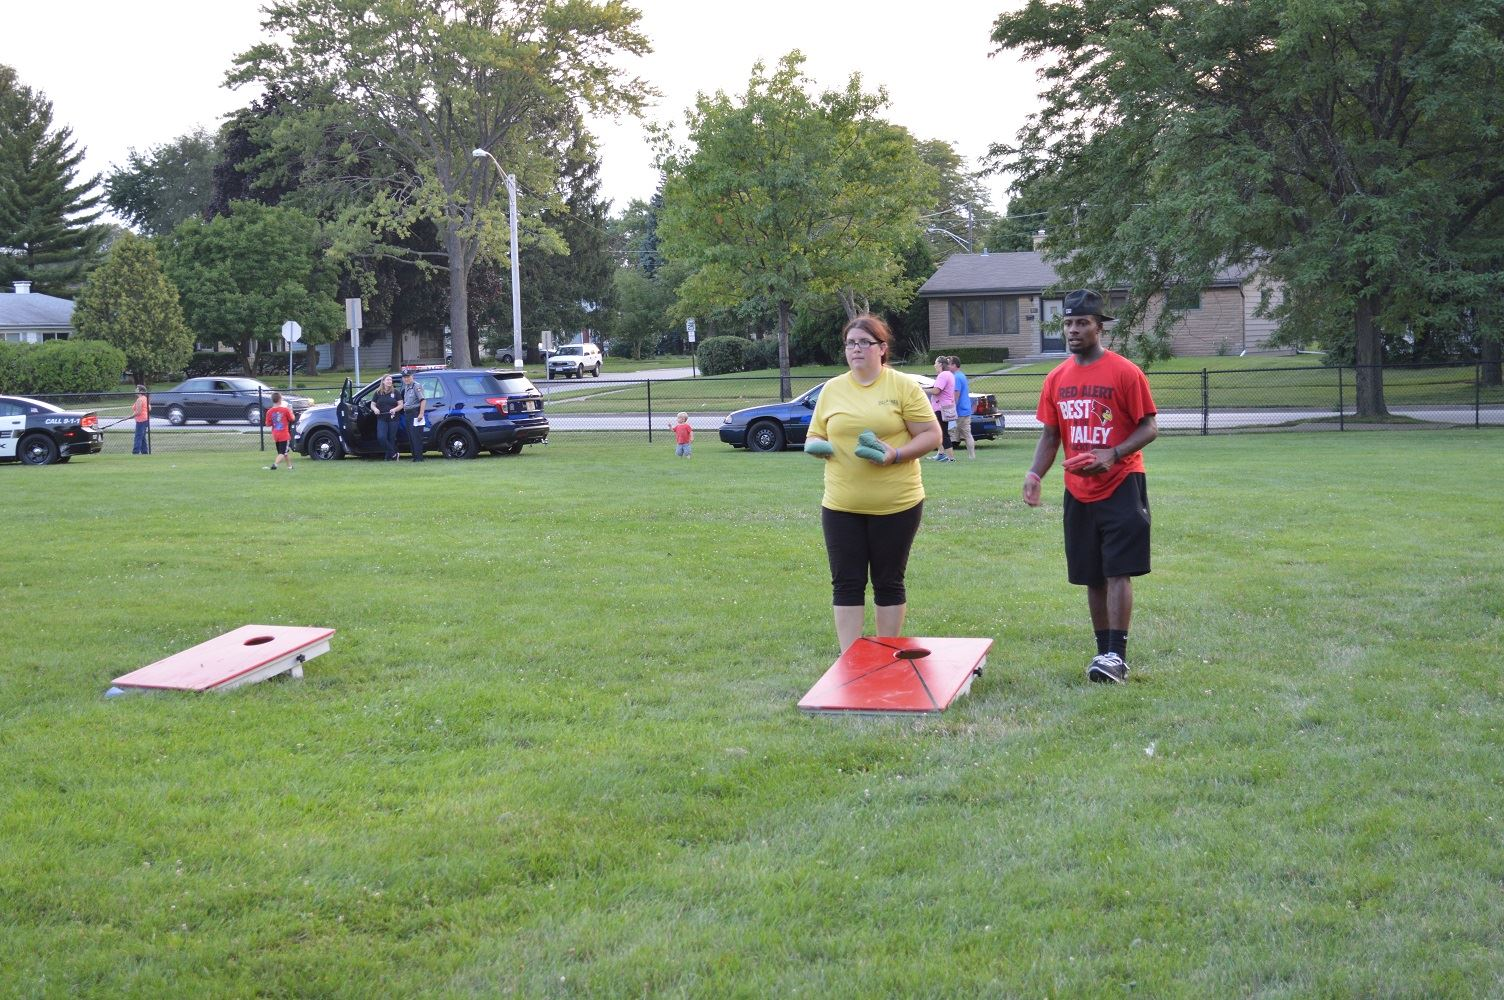 Community members play a game of bags at a National Night Out event at the Iowa Community Center, Aug. 2.